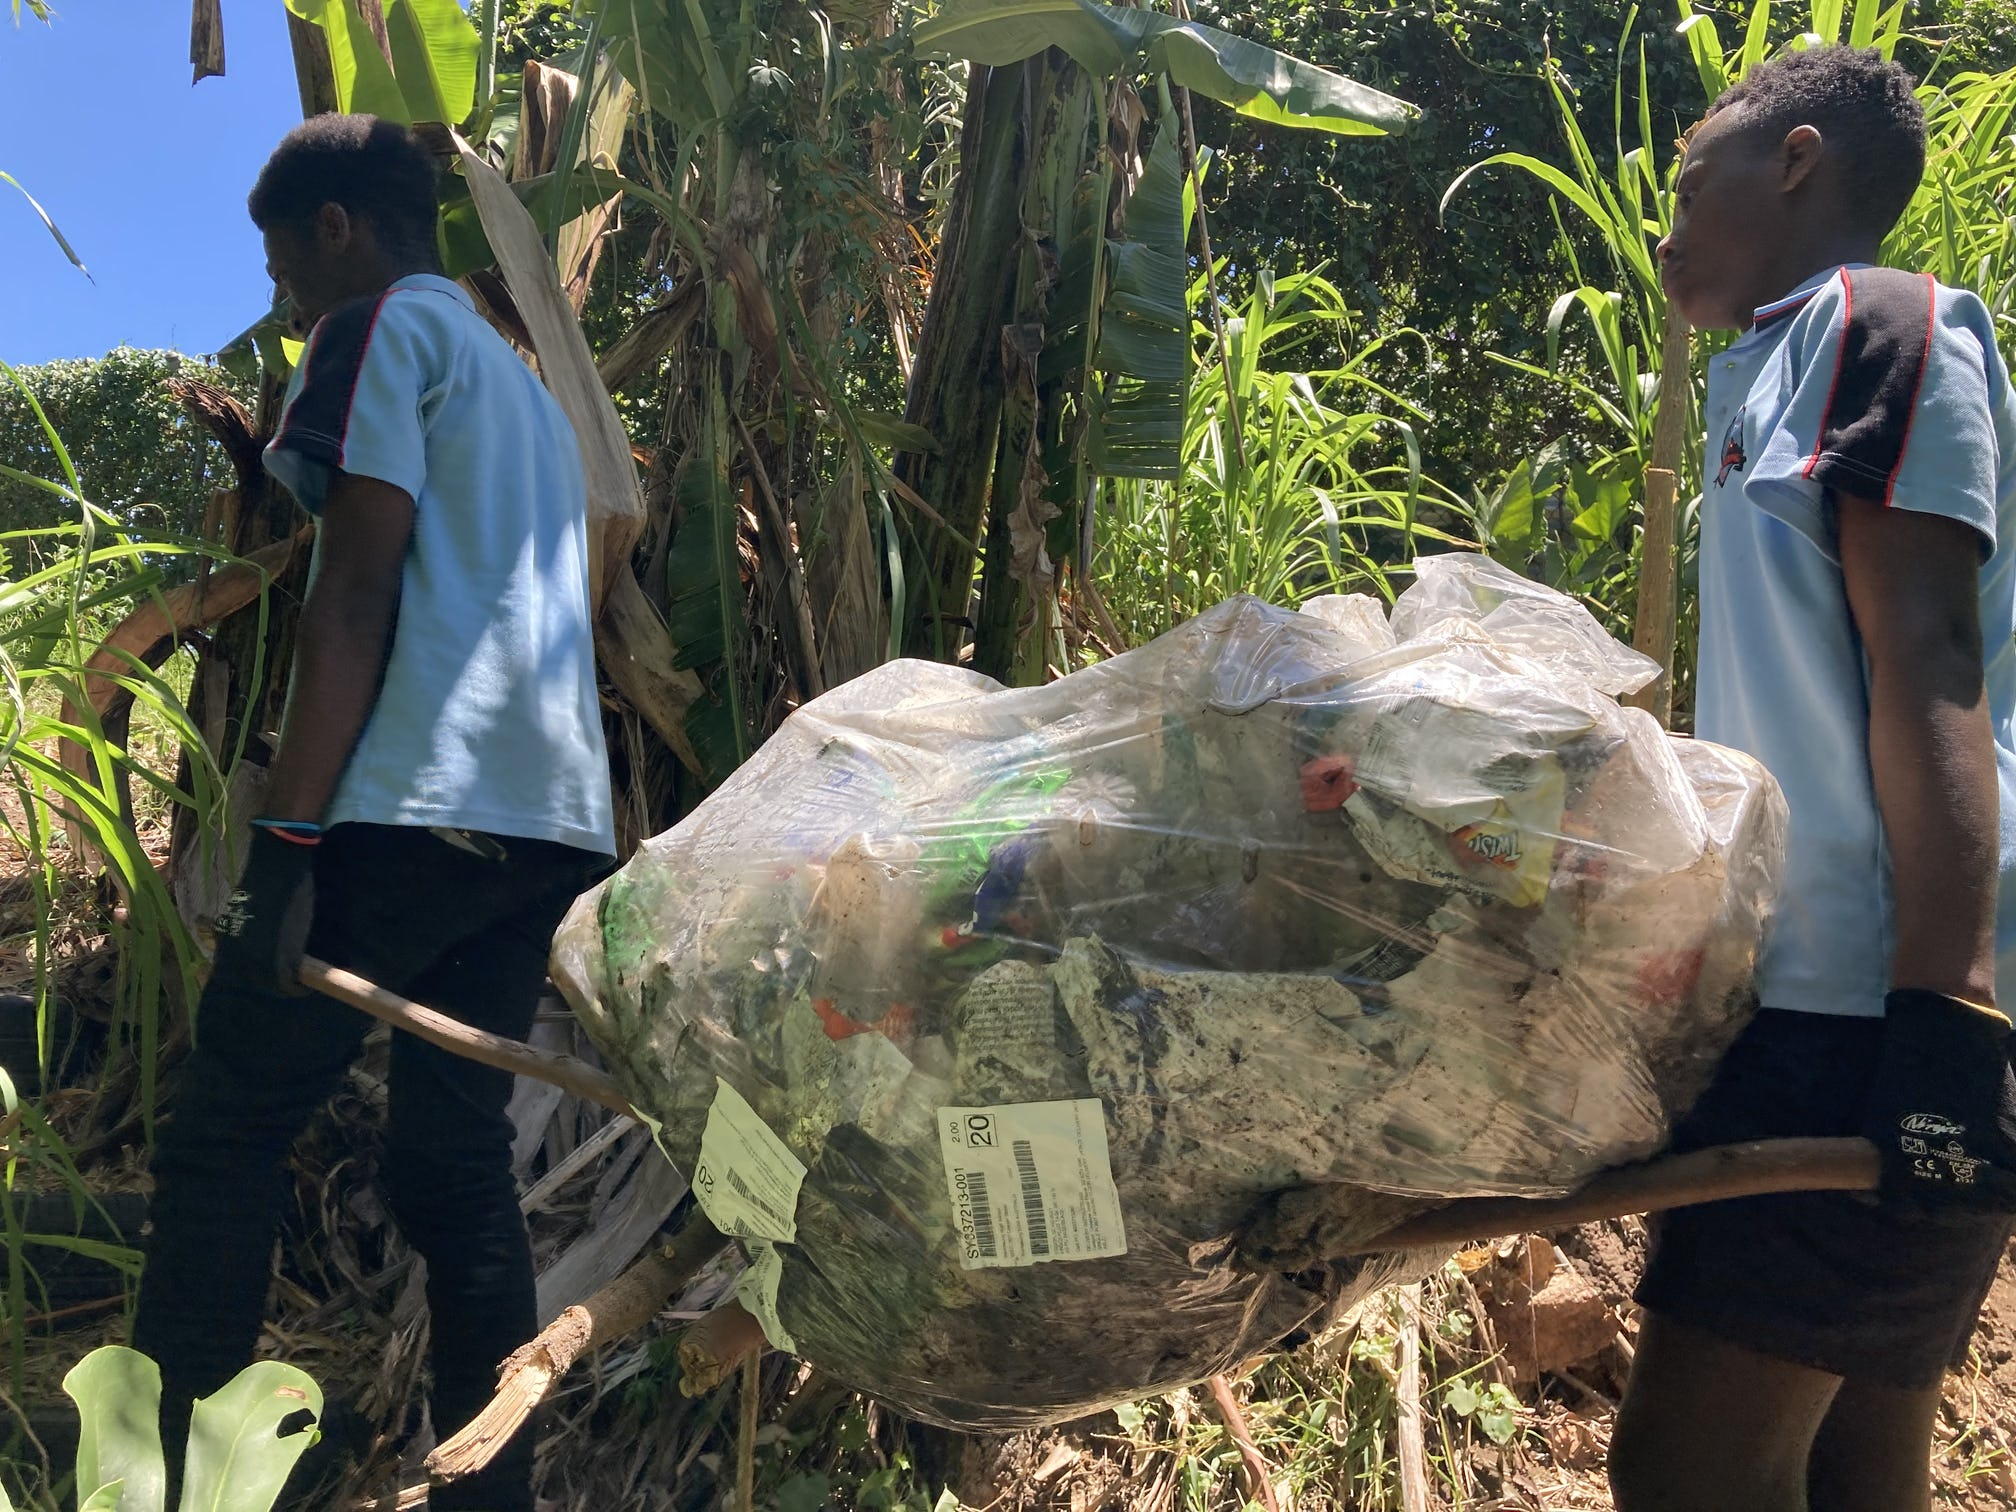 Warrawong High School students removing rubbish from the rehabilitation site